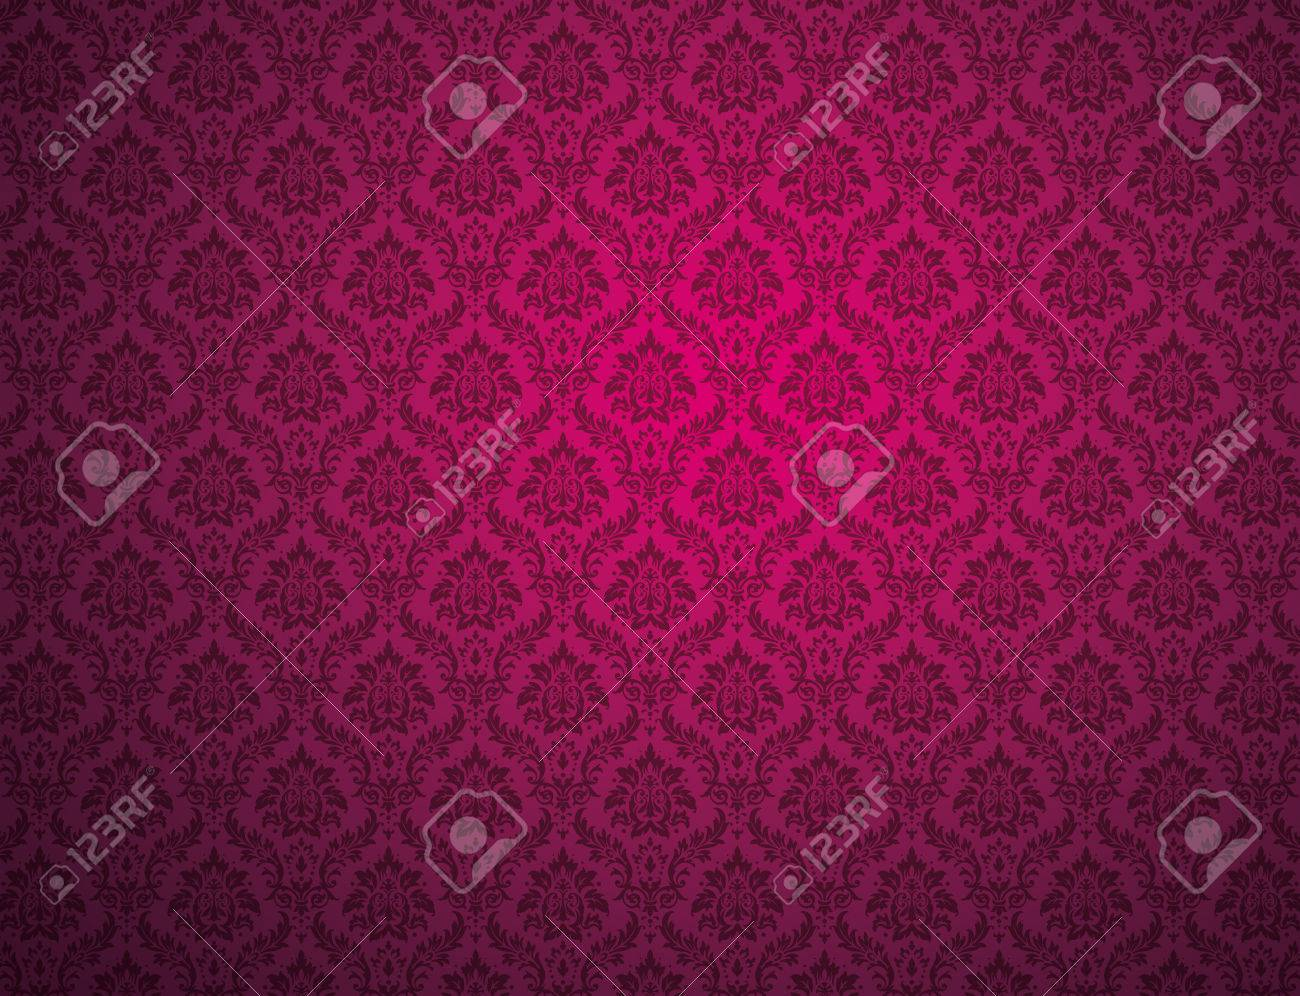 Purple Damask Wallpaper With Floral Patterns Stock Photo